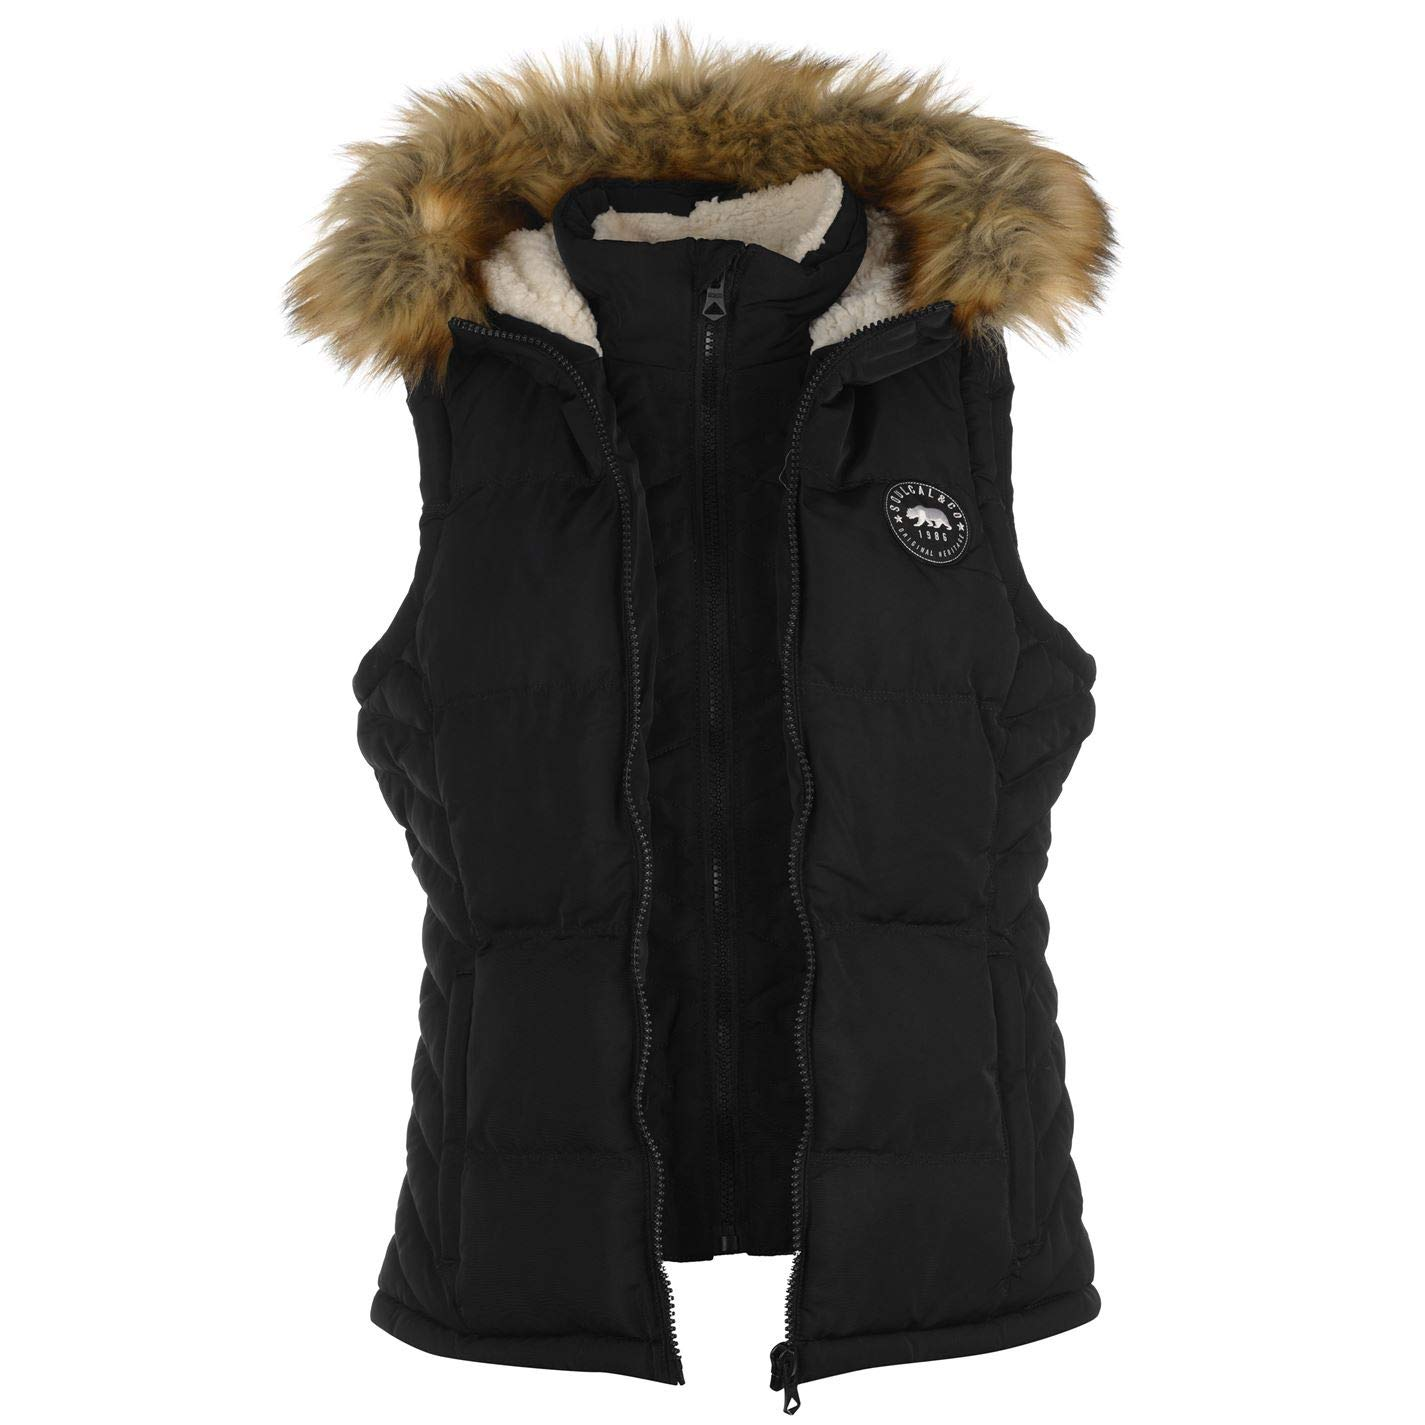 Black 10 (S) SoulCal Womens 2 Zip Gilet Ladies Quilted Sleevless Hooded Vest Top